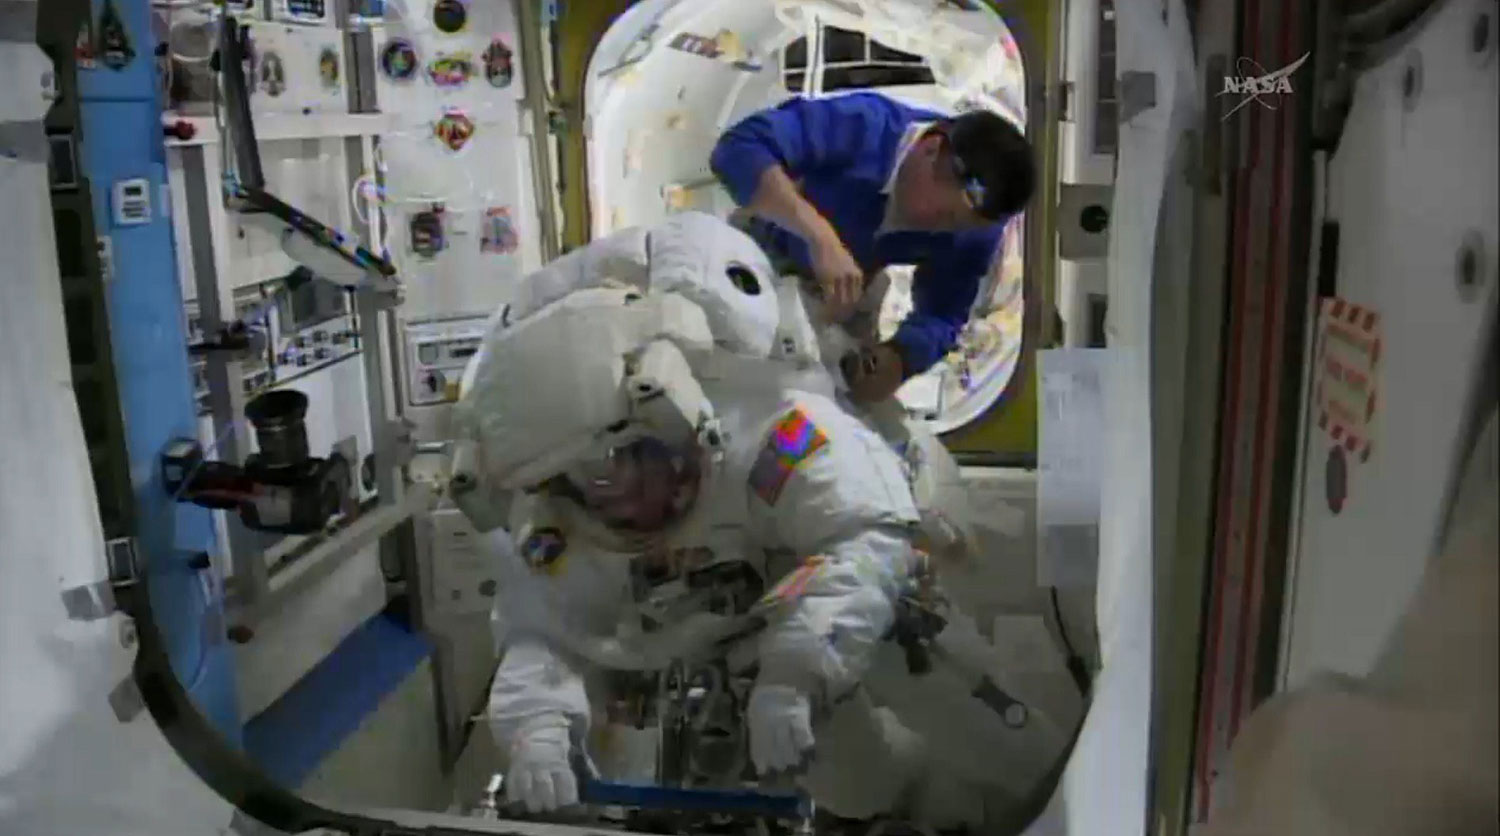 This April 23, 2014 NASA TV image shows International Space Station(ISS) astronauts Koichi Wakata of Japan as he helps Rick Mastracchio of the US(front) prepare for a spacewalk to install a backup computer that failed earlier this month.